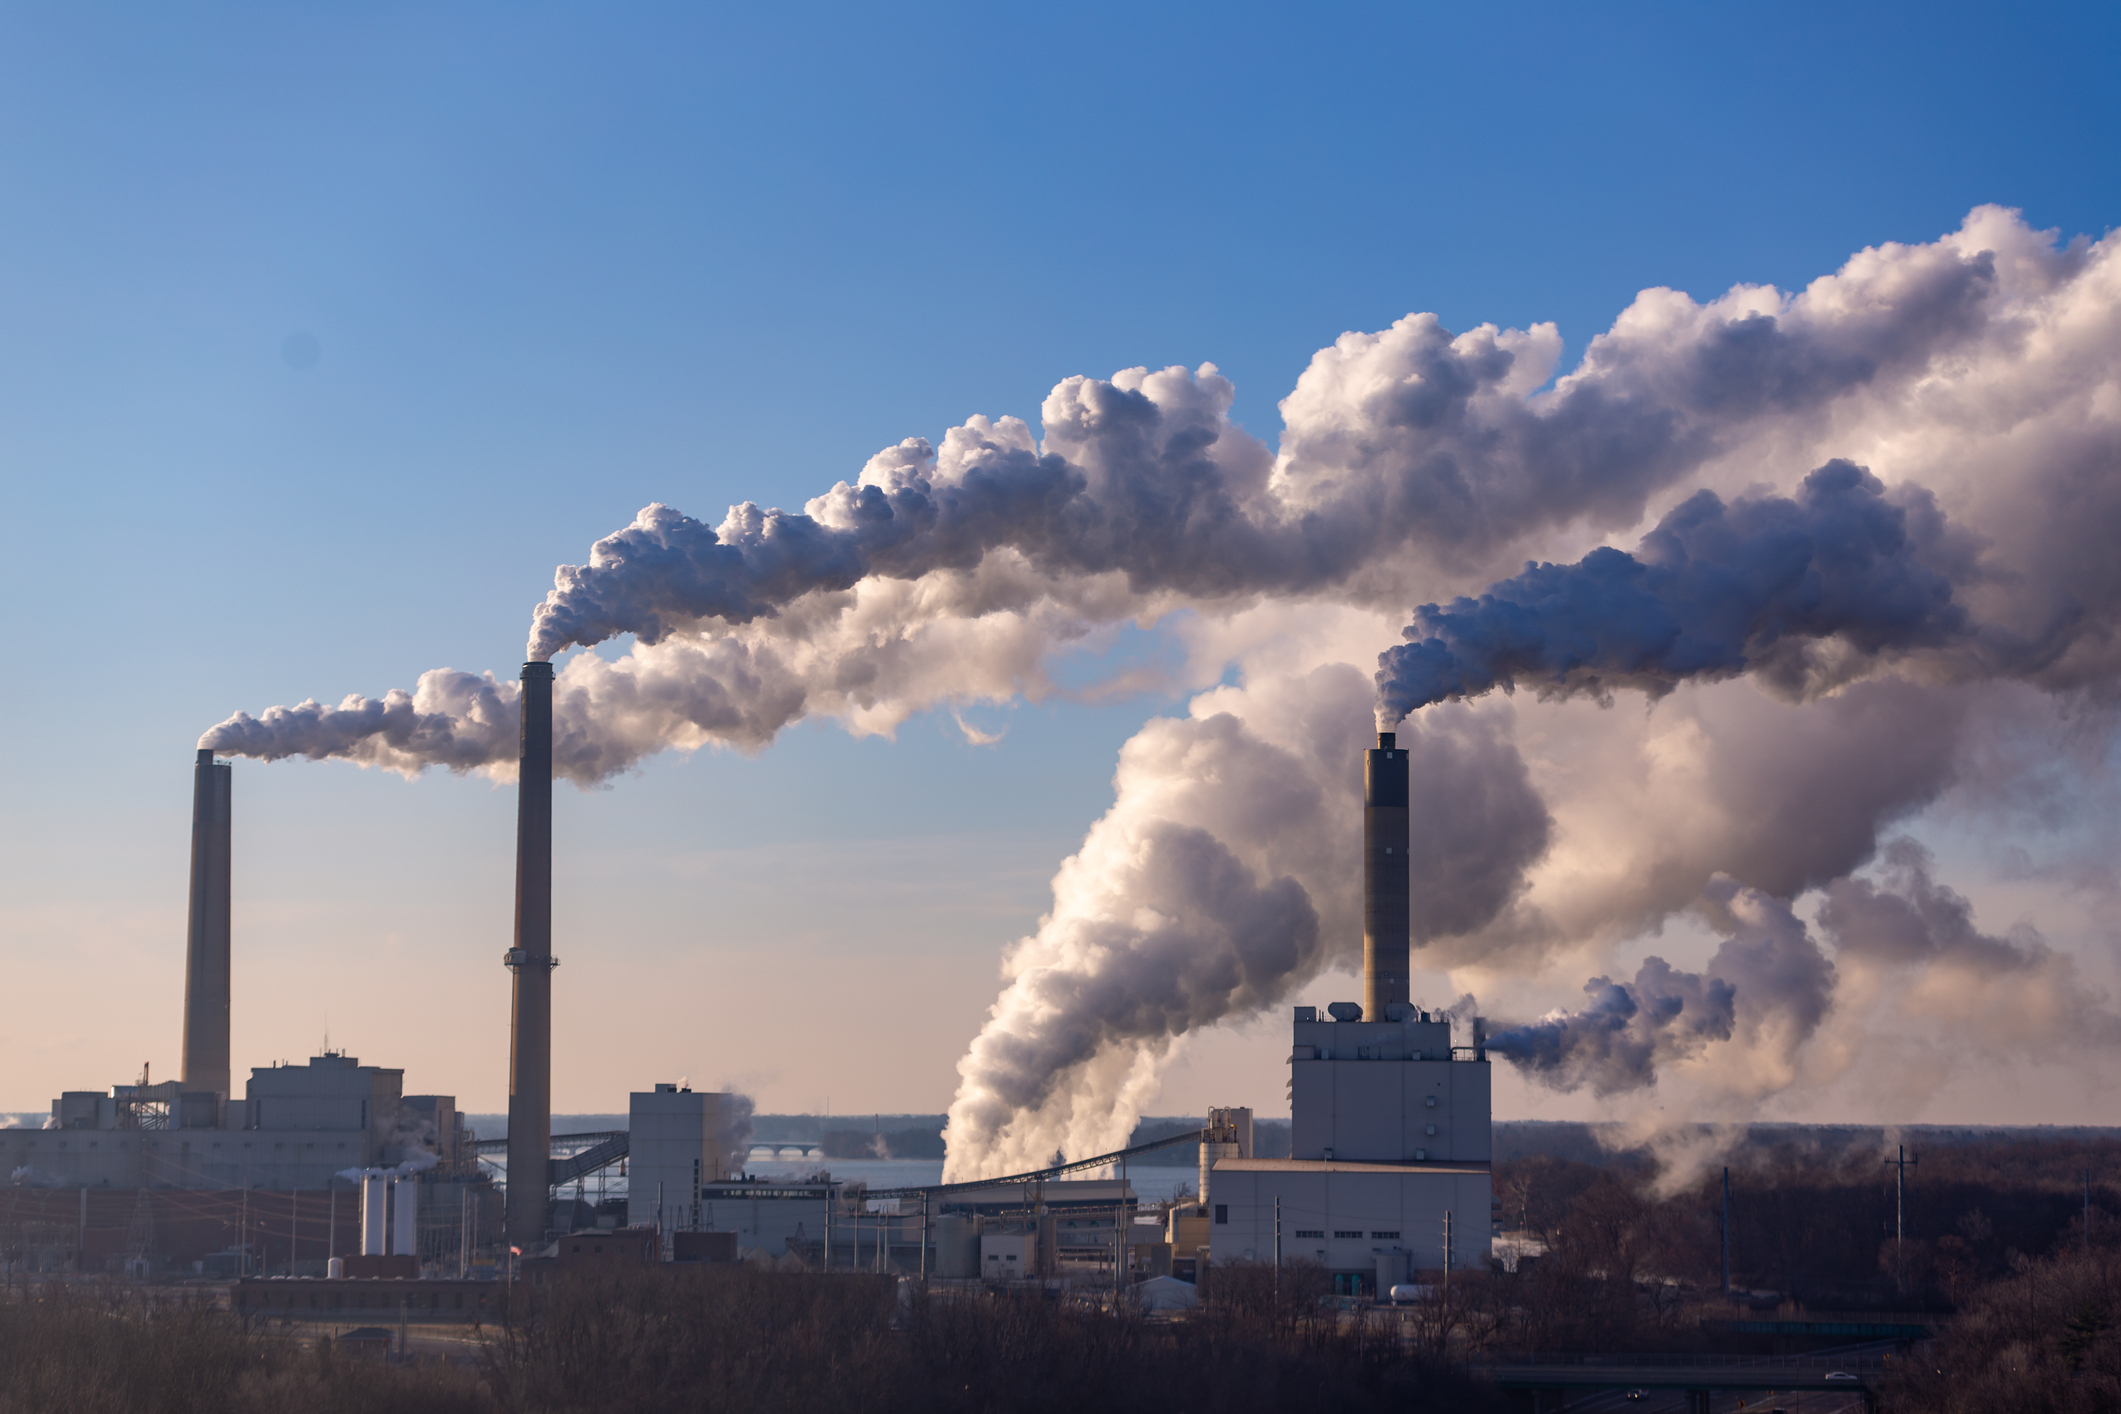 Greenhouse gases emanating from factory chimneys